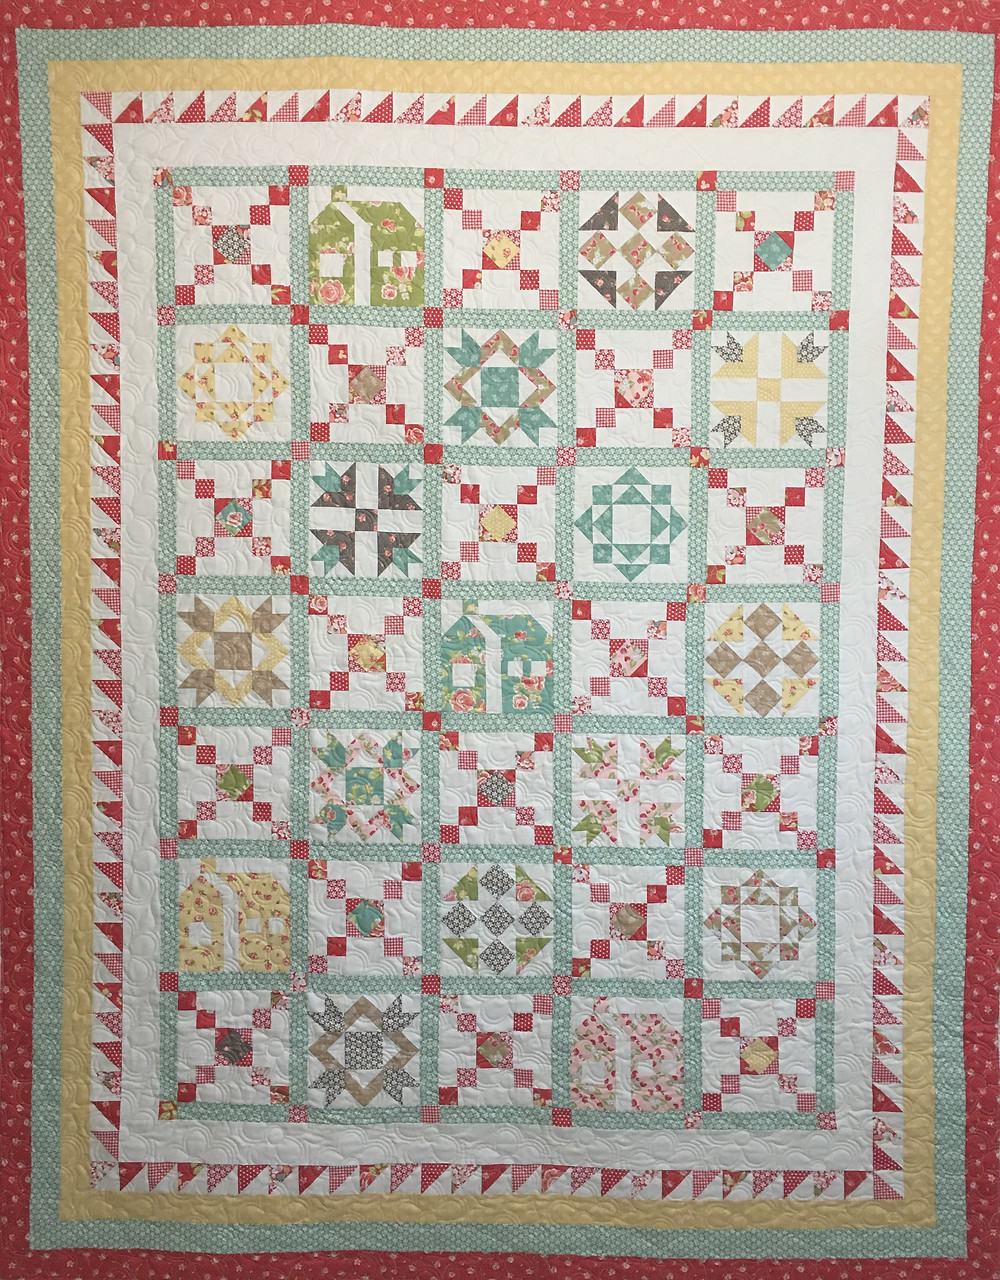 Crossroads Quilt by Sally Matoushek